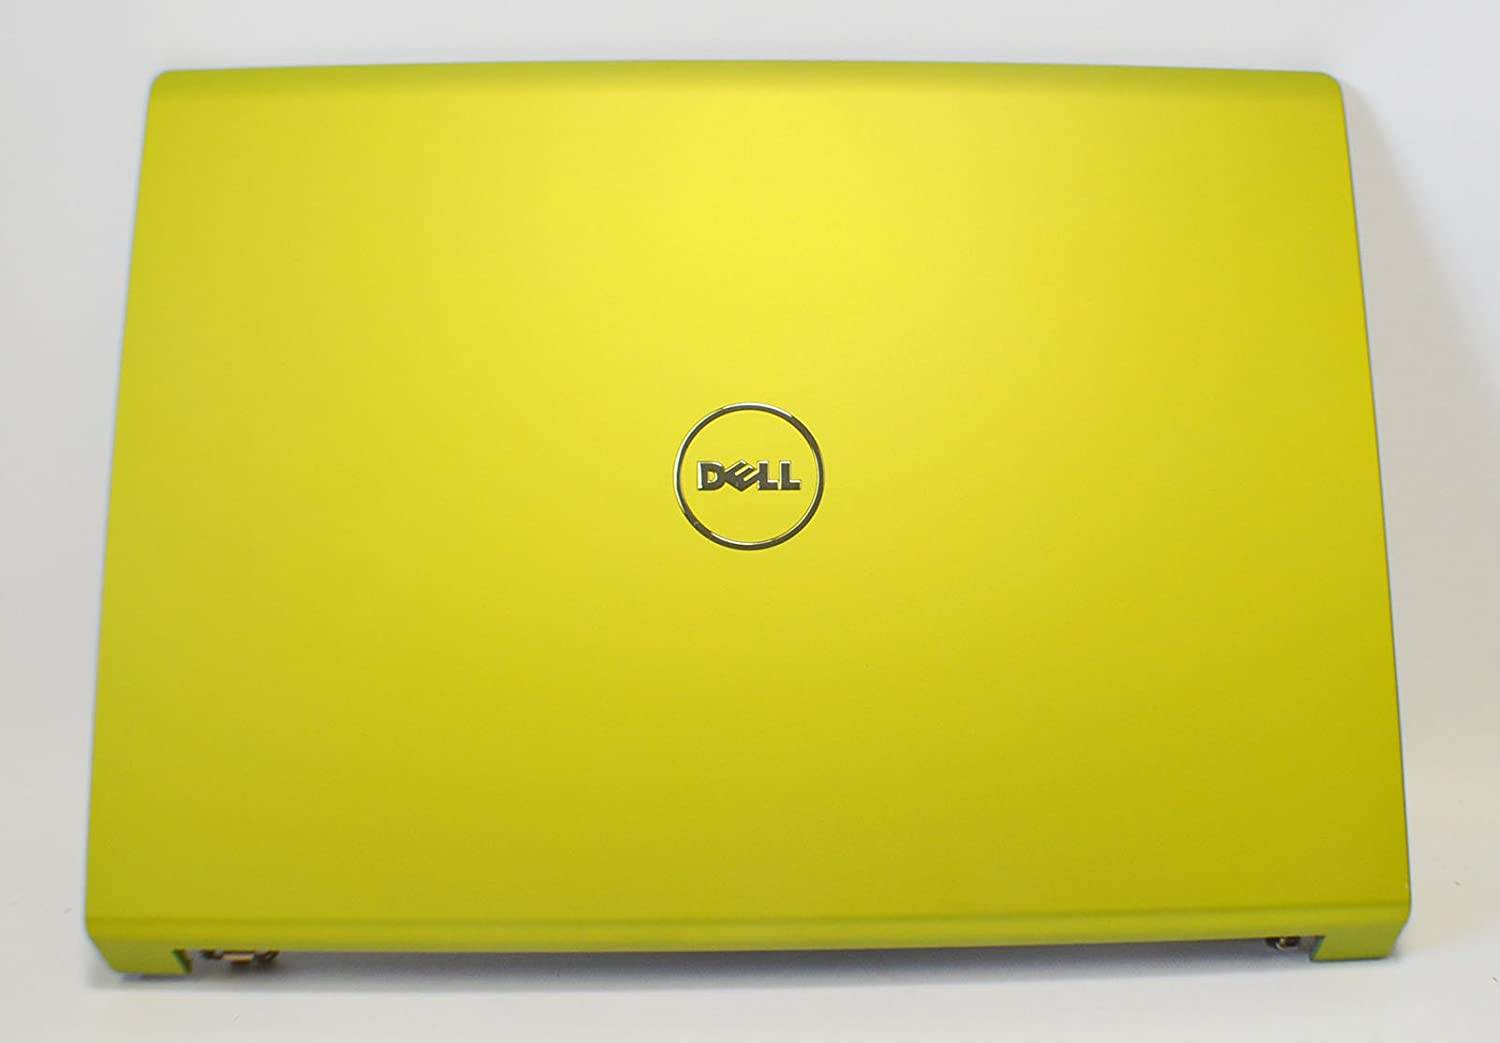 5 NEW Genuine OEM DELL Studio 1735 1736 1737 Laptop Notebook Top Cover Enclosure Case LCD Rear Back Panel Assembly N498H